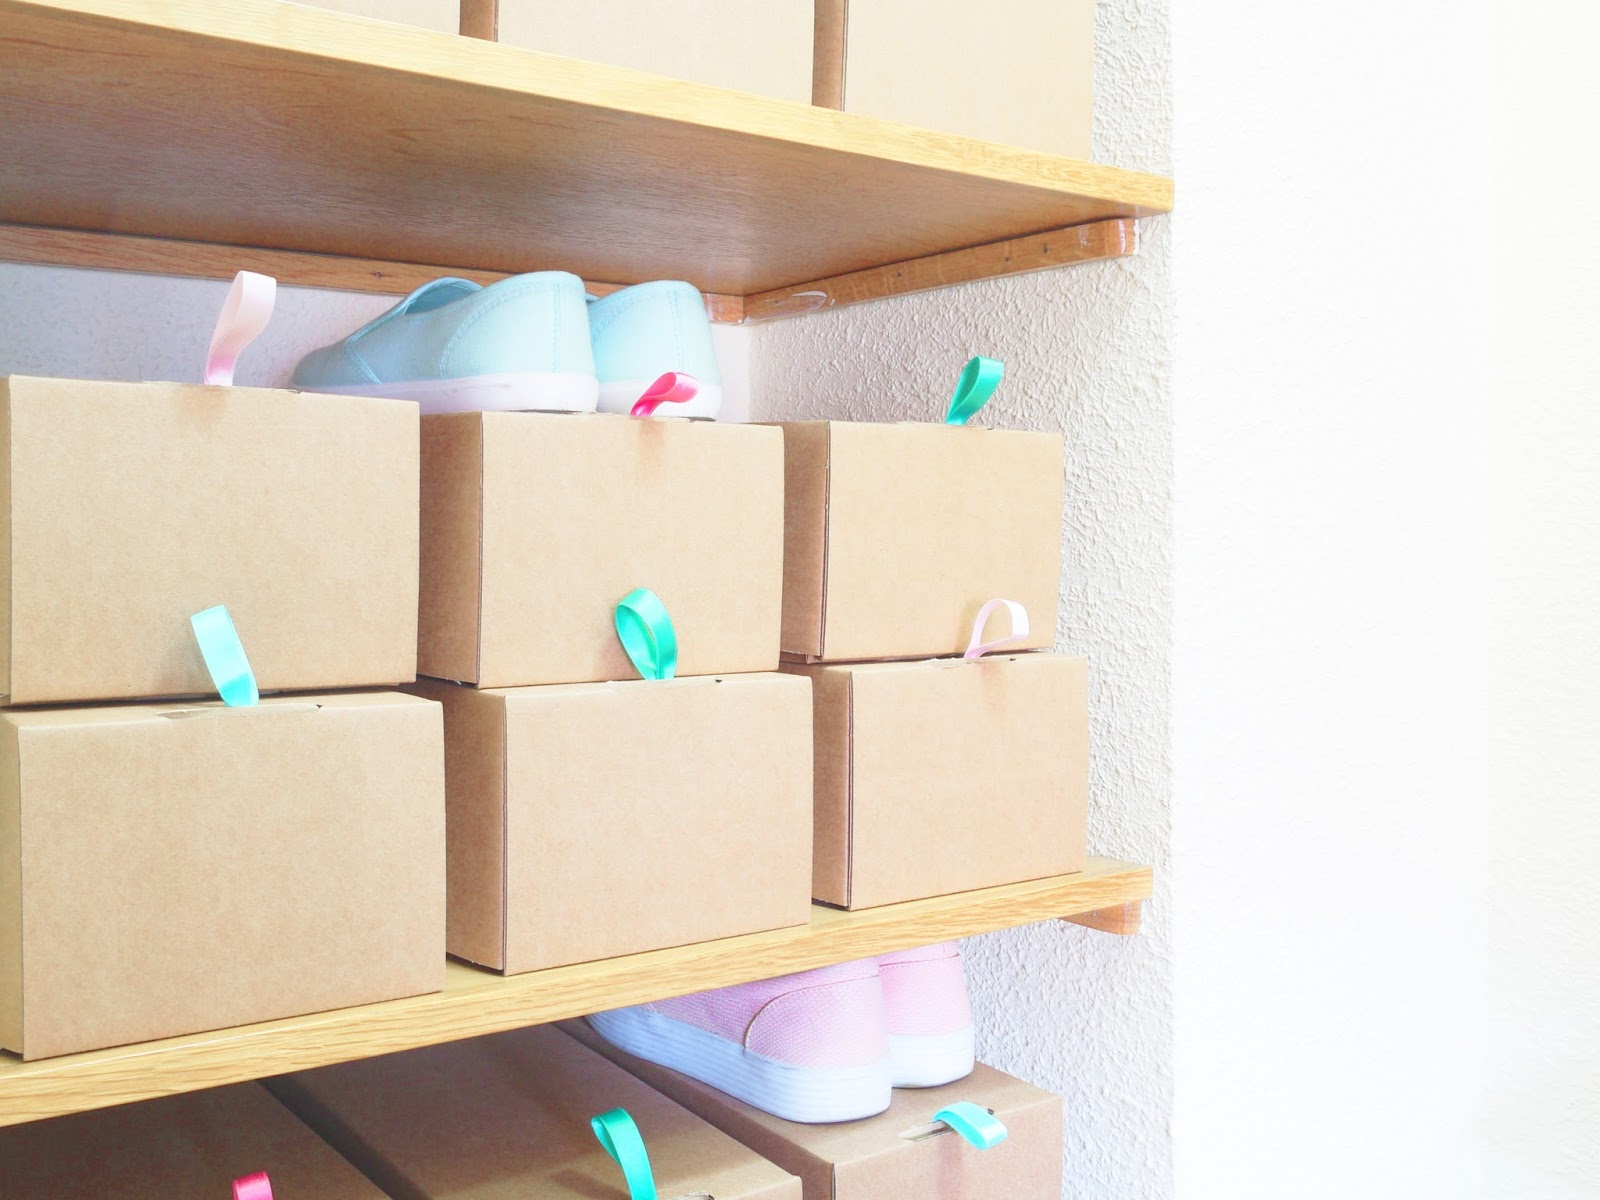 Diy Zapatero Visto Con Cajitas De Cart N Handbox Craft Lovers  # Muebles Diy De Carton